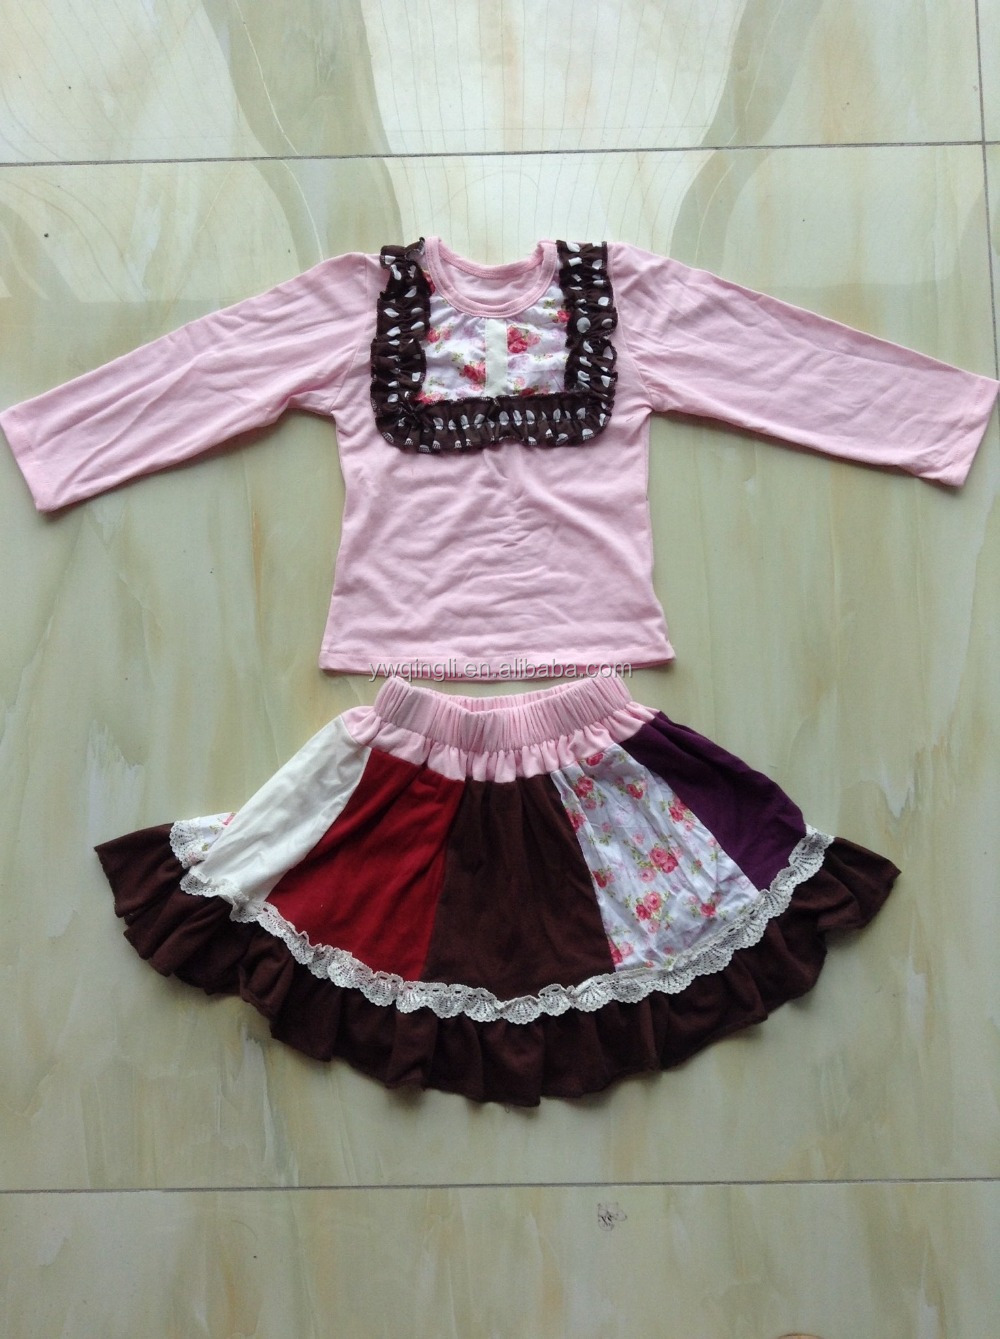 2015 China Wholesale Little Girls Clothing Sets Pink Outfit 100% Cotton Childrens Boutique Remake Skirts Sets